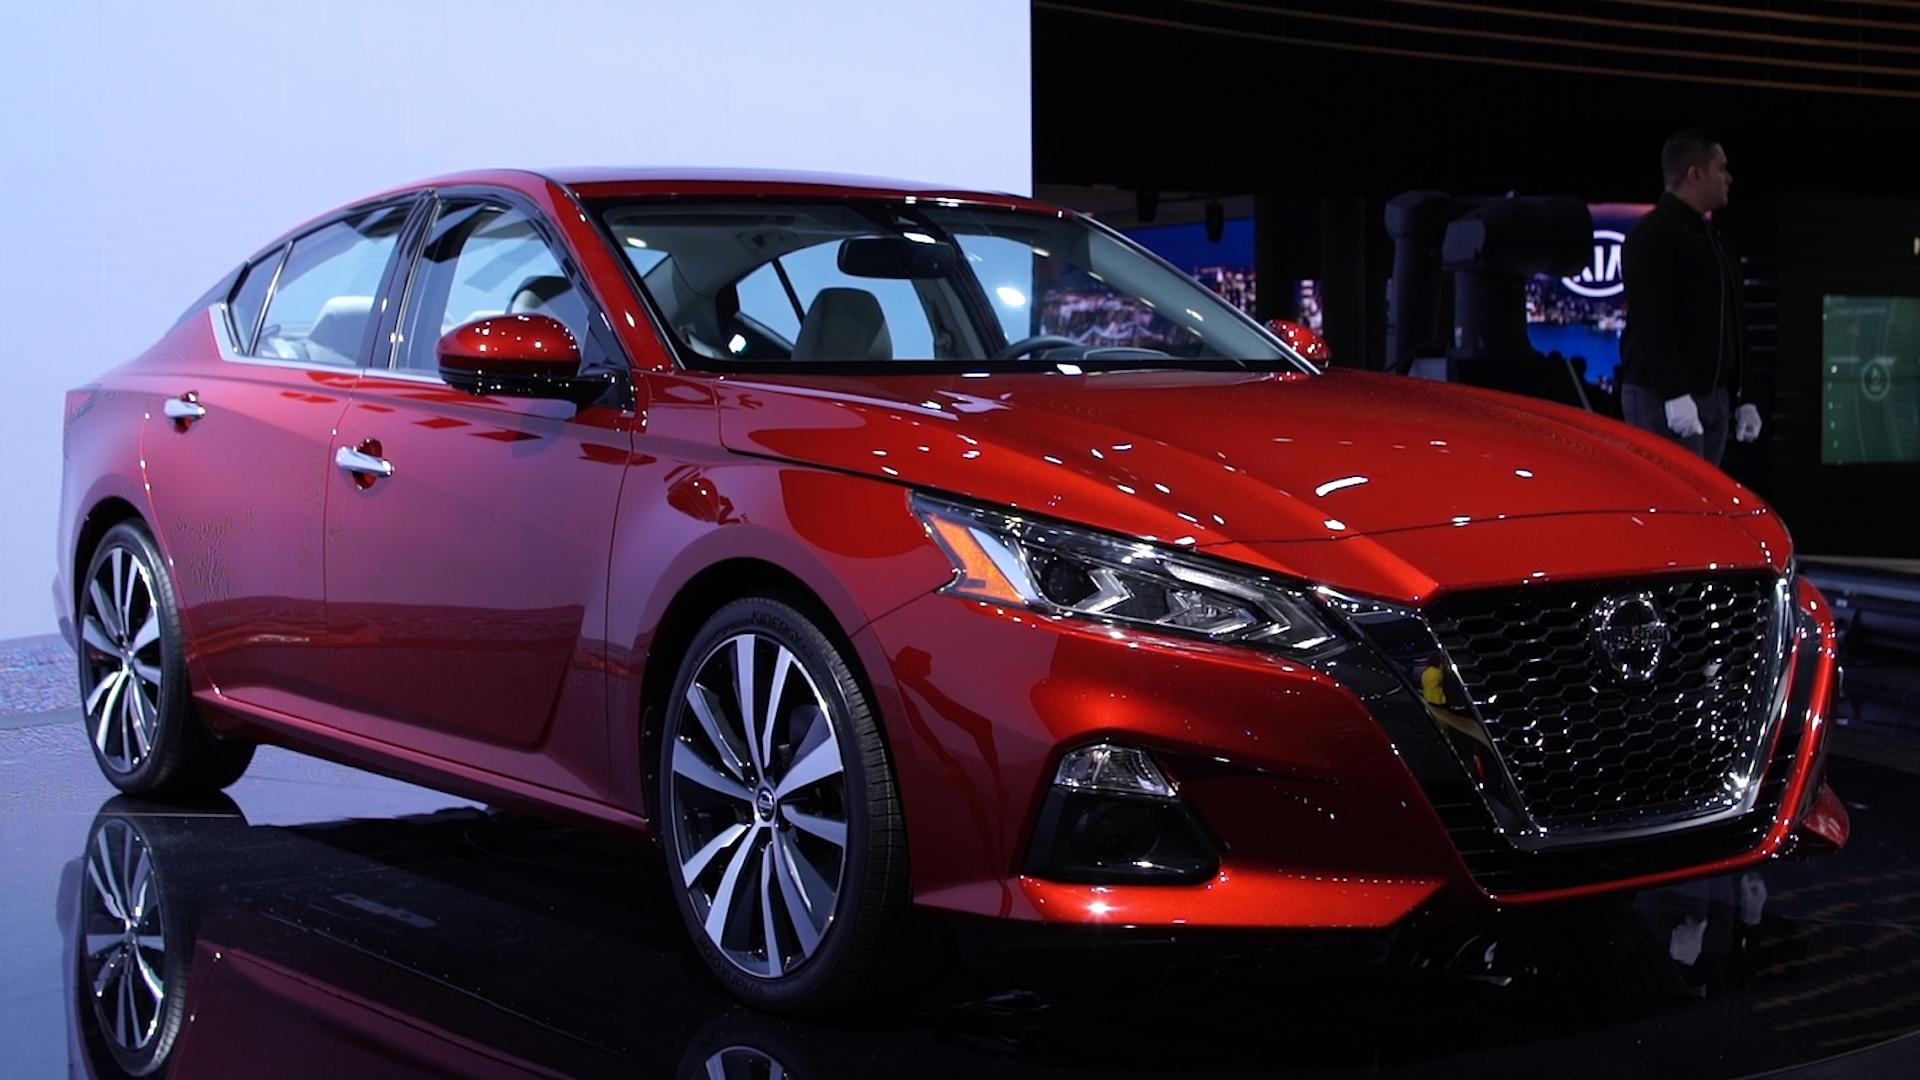 2019 Nissan Altima Preview - Consumer Reports